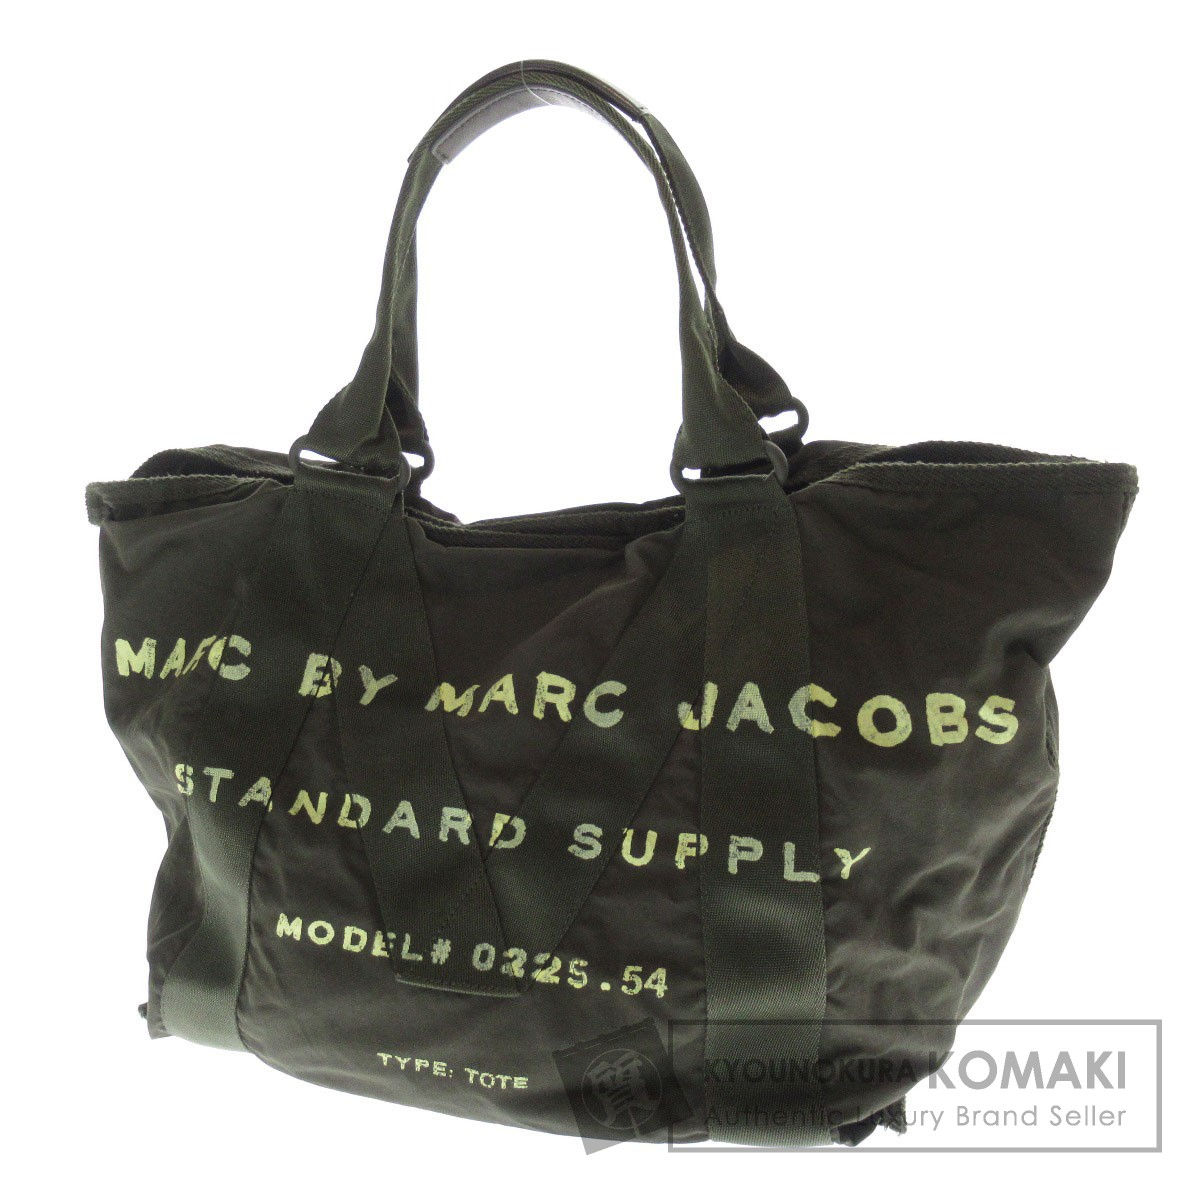 MARC BY MARC JACOBS ロゴデザイン トートバッグ ナイロン素材 レディース 【中古】【マークバイマークジェイコブス】